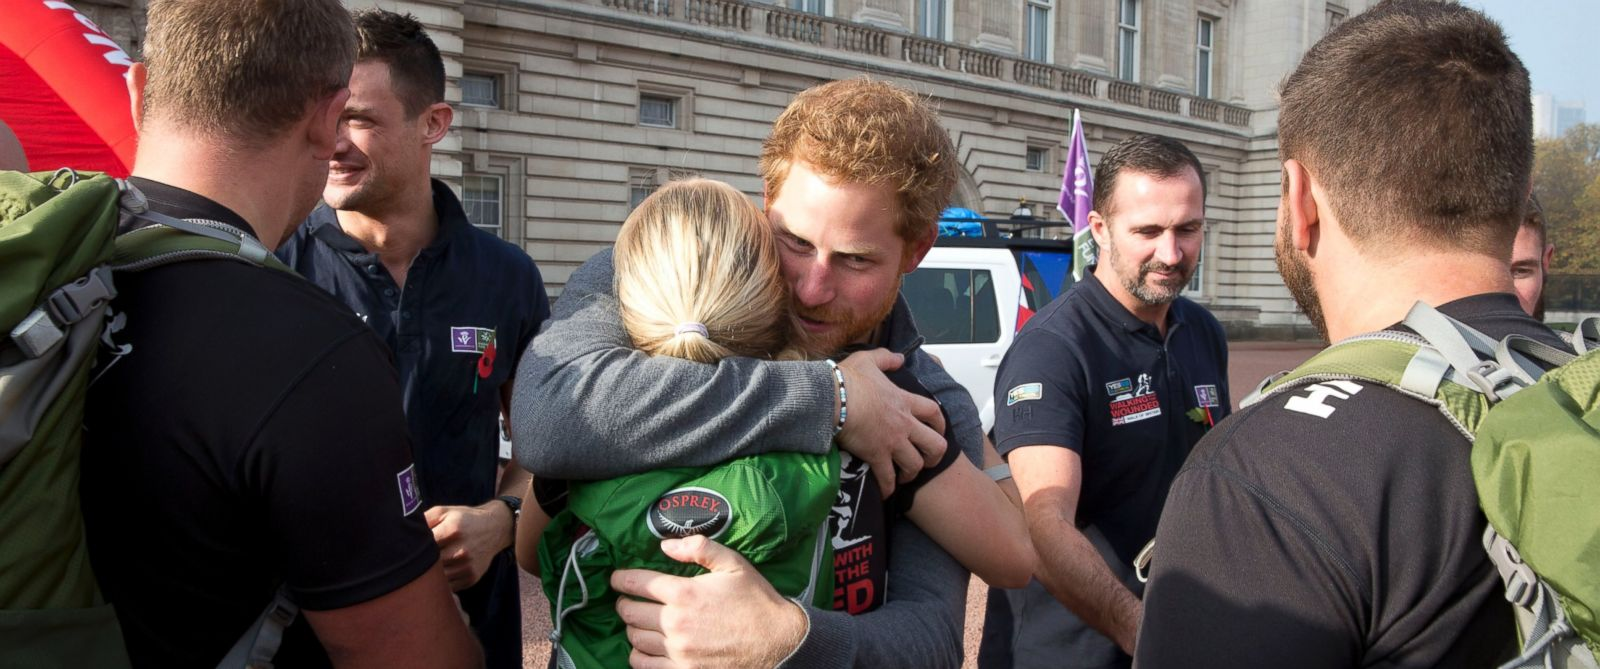 PHOTO: Prince Harry meets with members of the Walking With The Wounded team at Buckingham Palace after their latest endeavor, the Walk Of Britain, Nov. 1, 2015 in London.